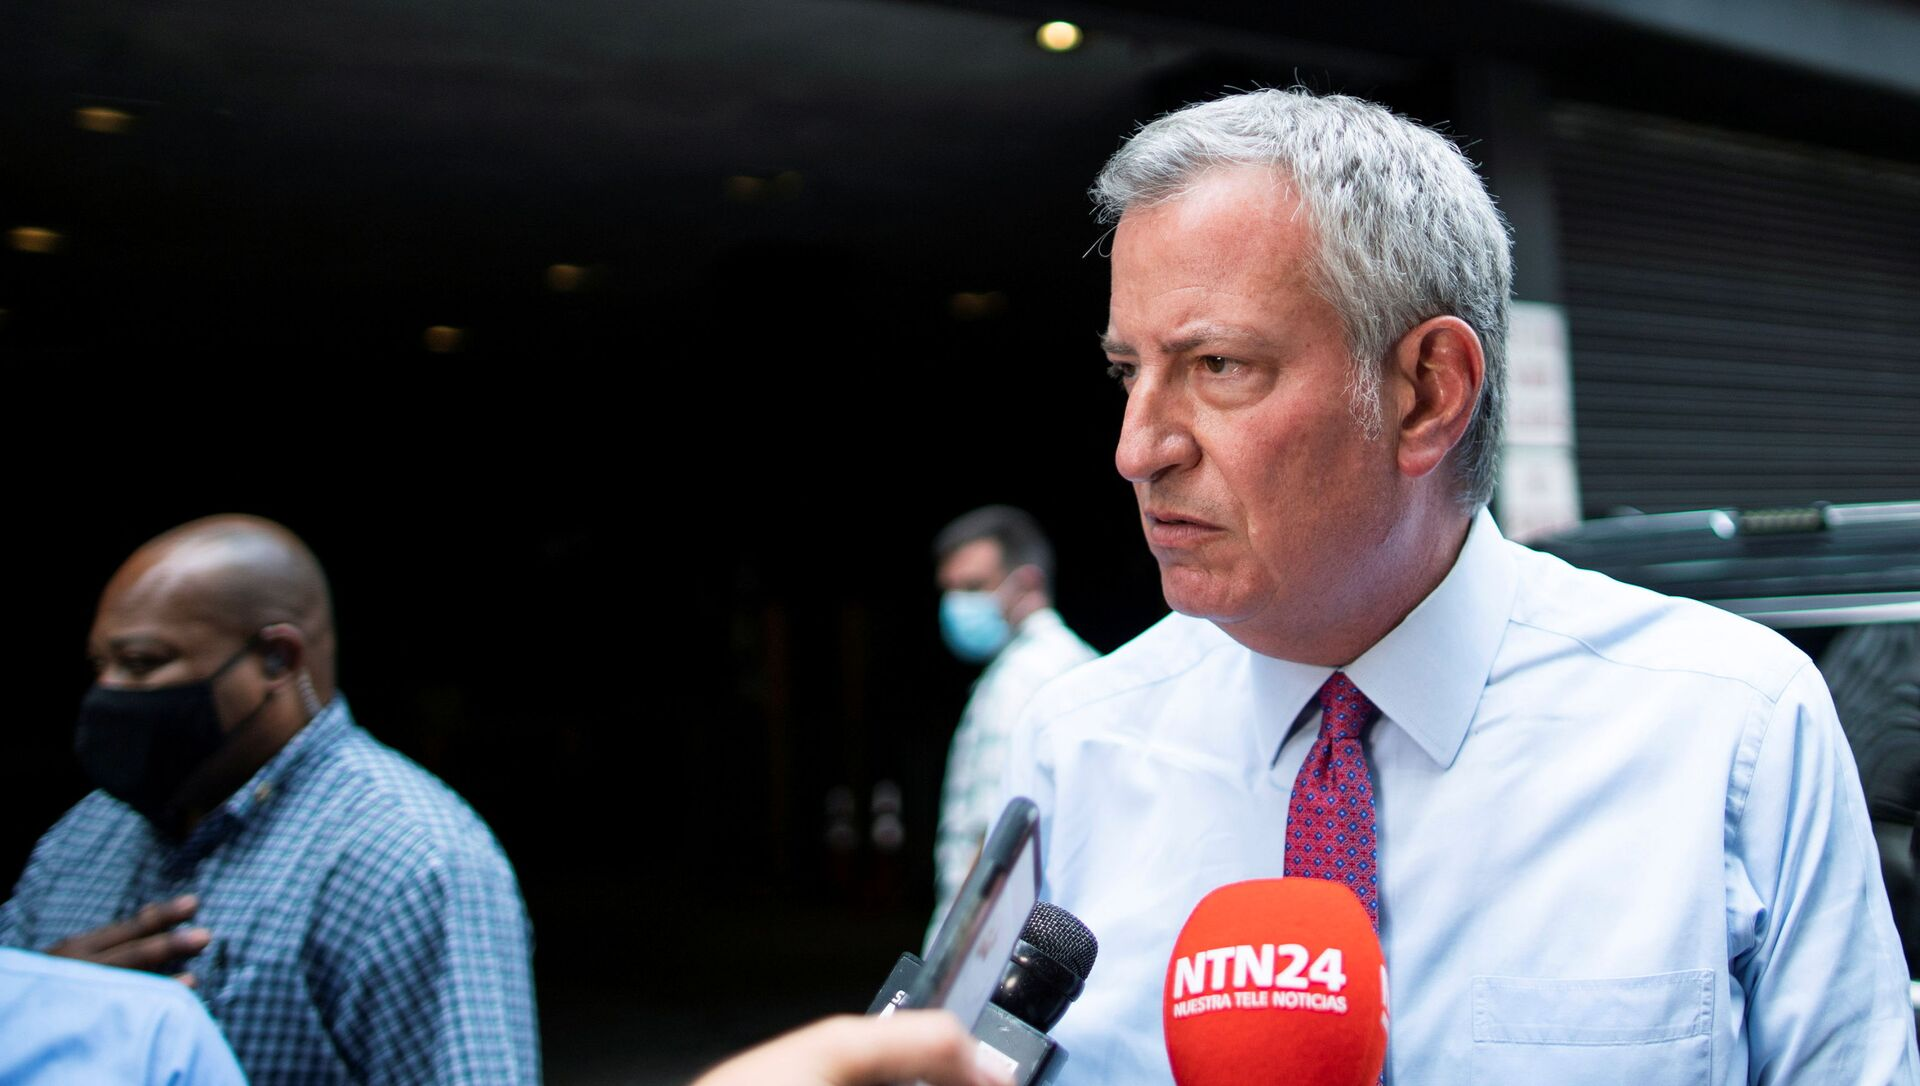 New York City Mayor Bill de Blasio gives his remarks to the media regarding a probe that found New York Governor Andrew Cuomo sexually harassed multiple women, in New York City, New York, U.S., August 3, 2021. - Sputnik International, 1920, 03.08.2021